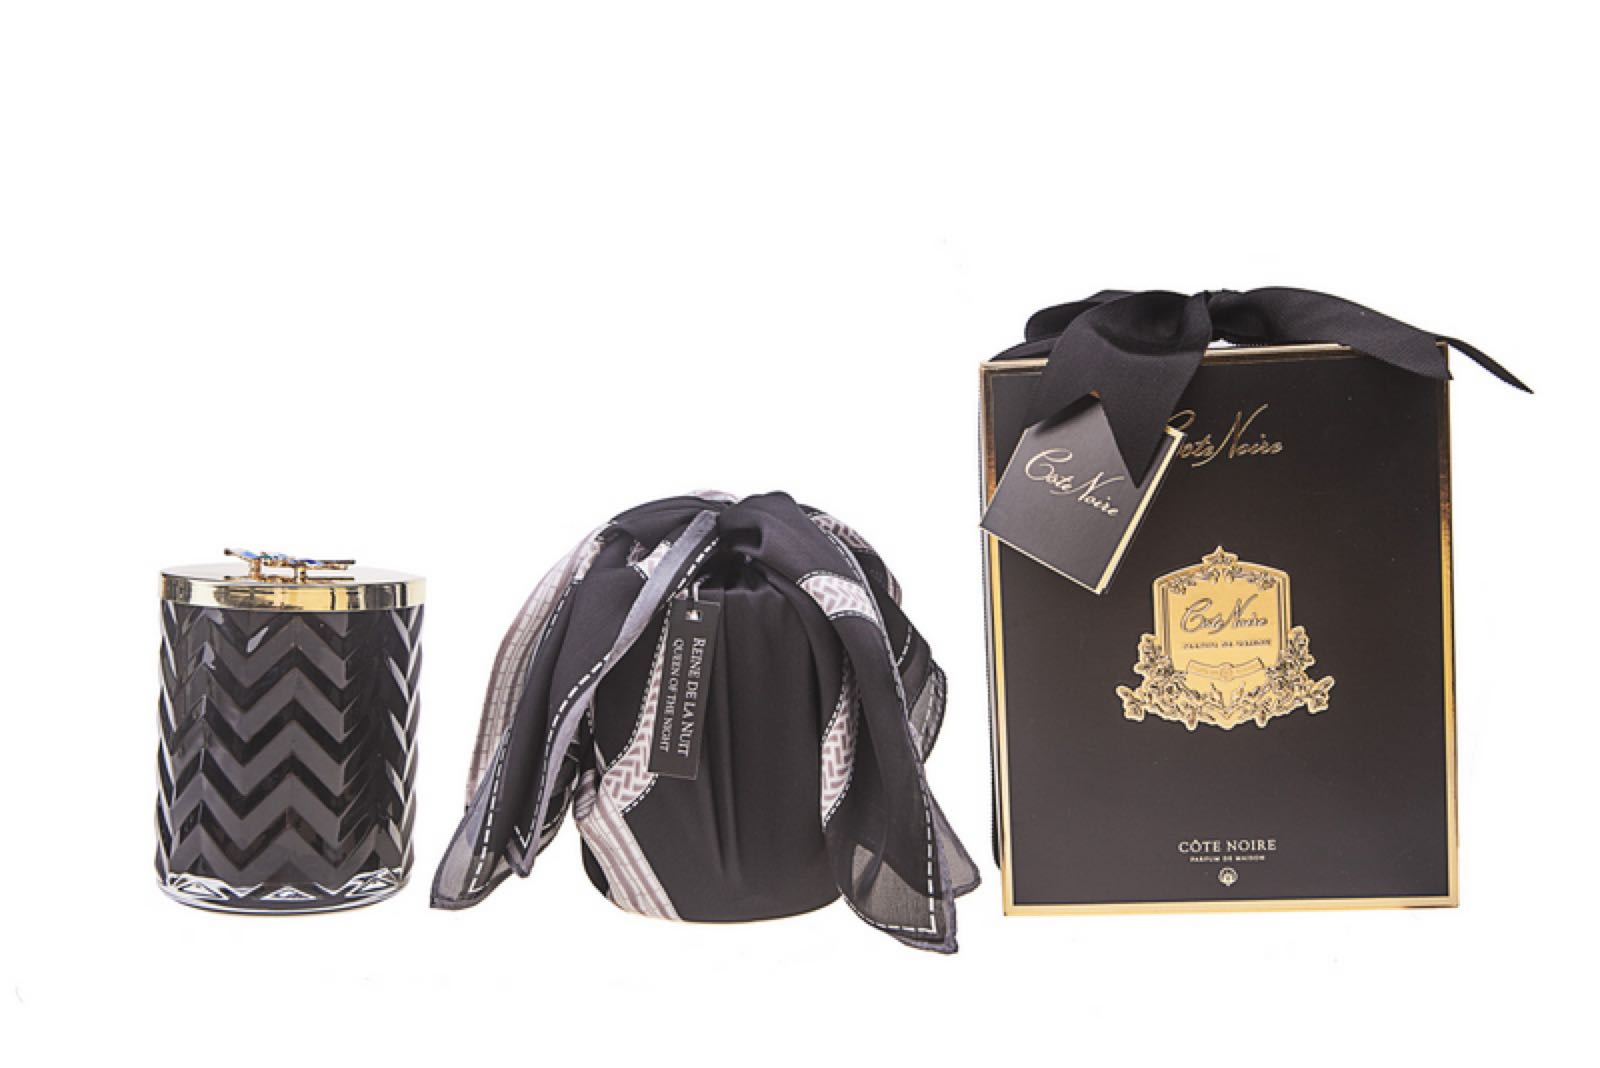 Cote Noire Fragrance Herringbone Queen of the night Candle with silk scarf